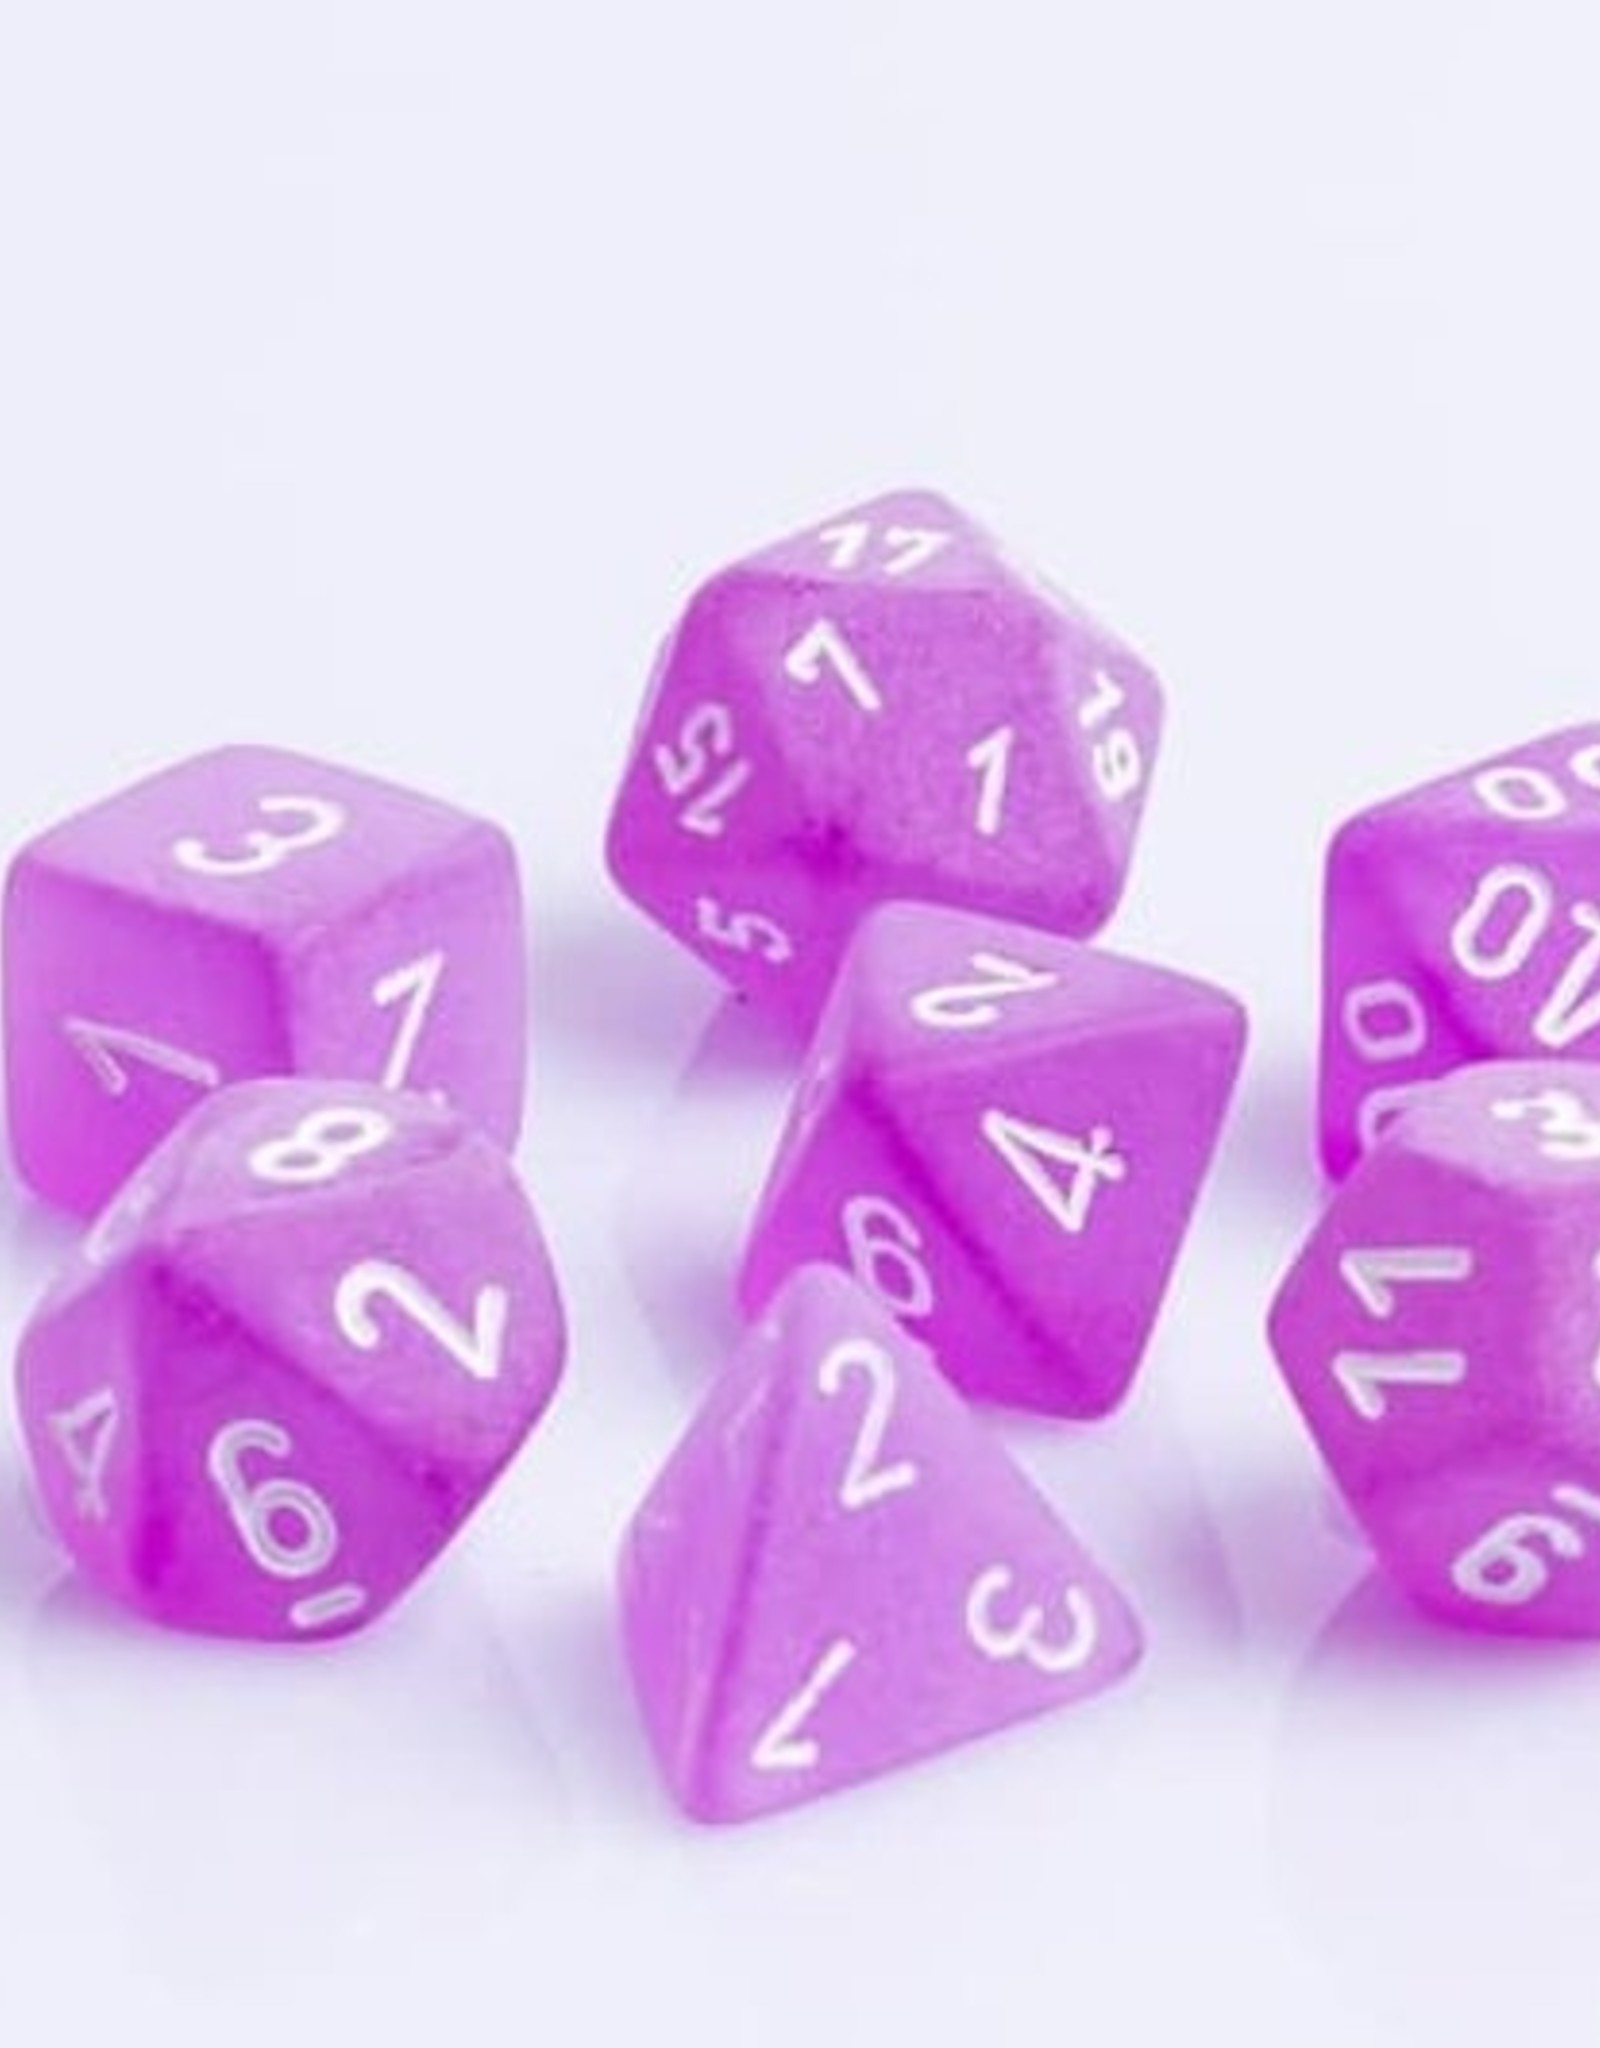 Chessex Chessex 7-Die set Frosted - Purple/White